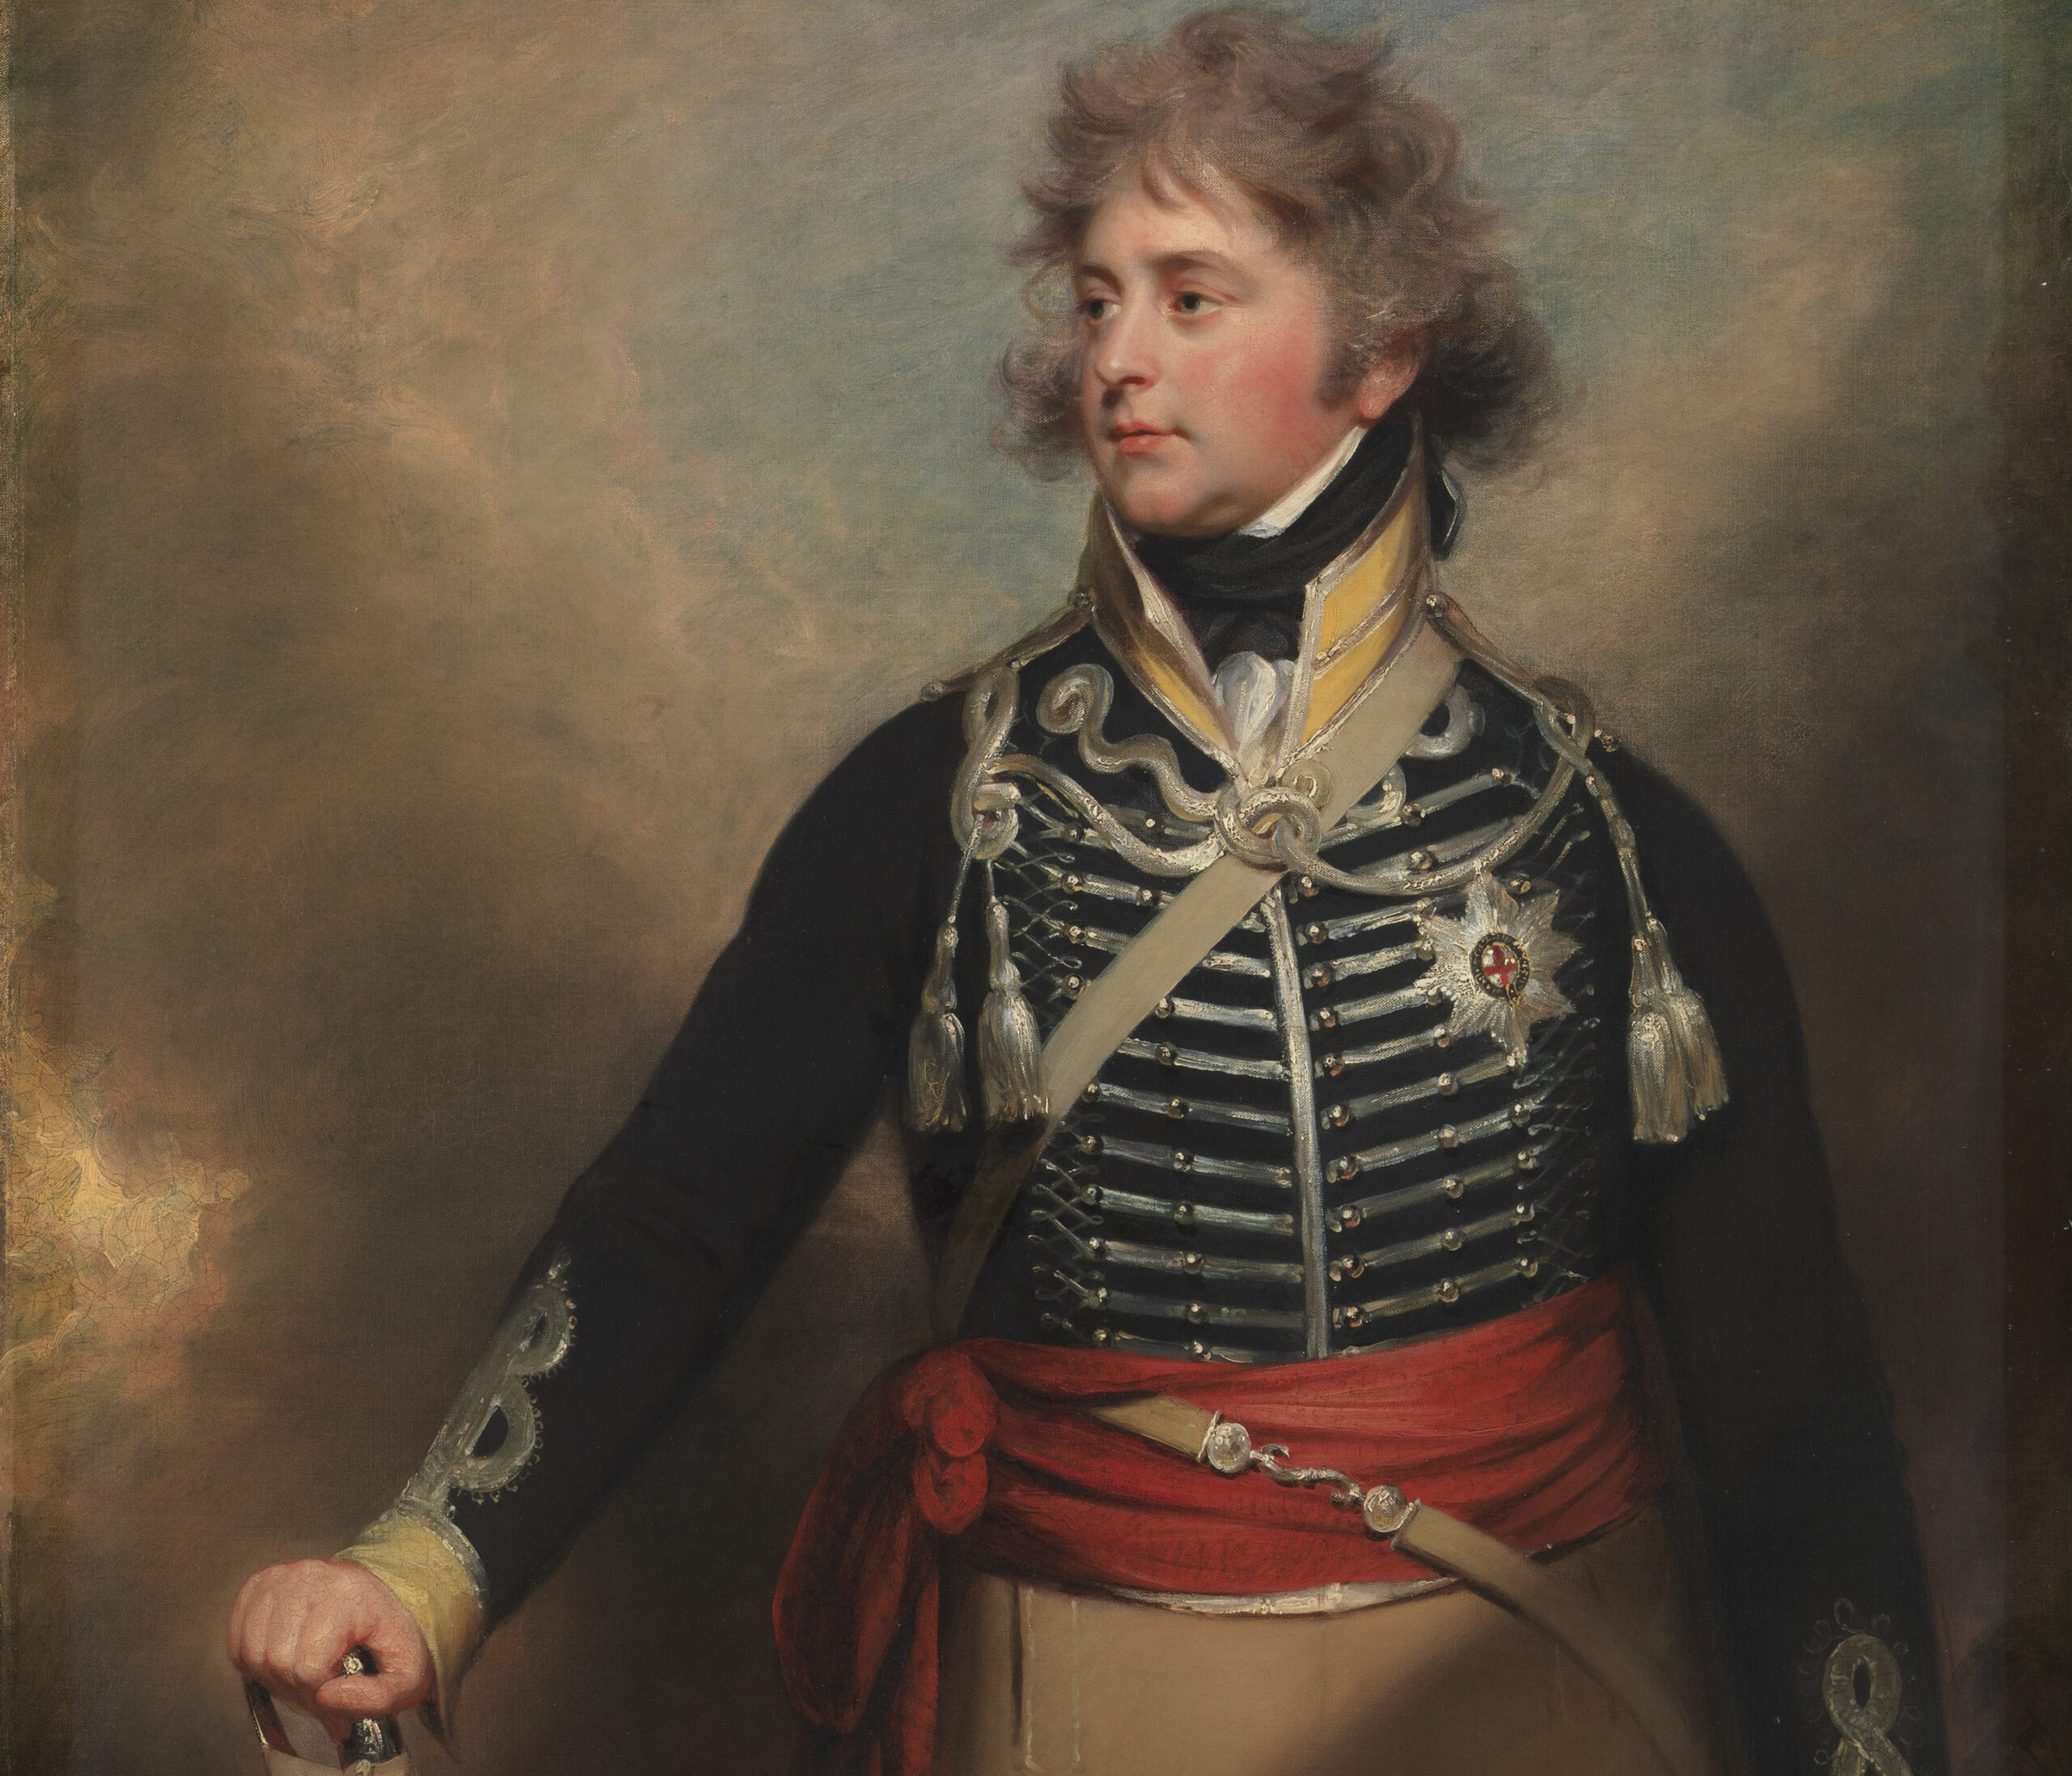 King George IV facts